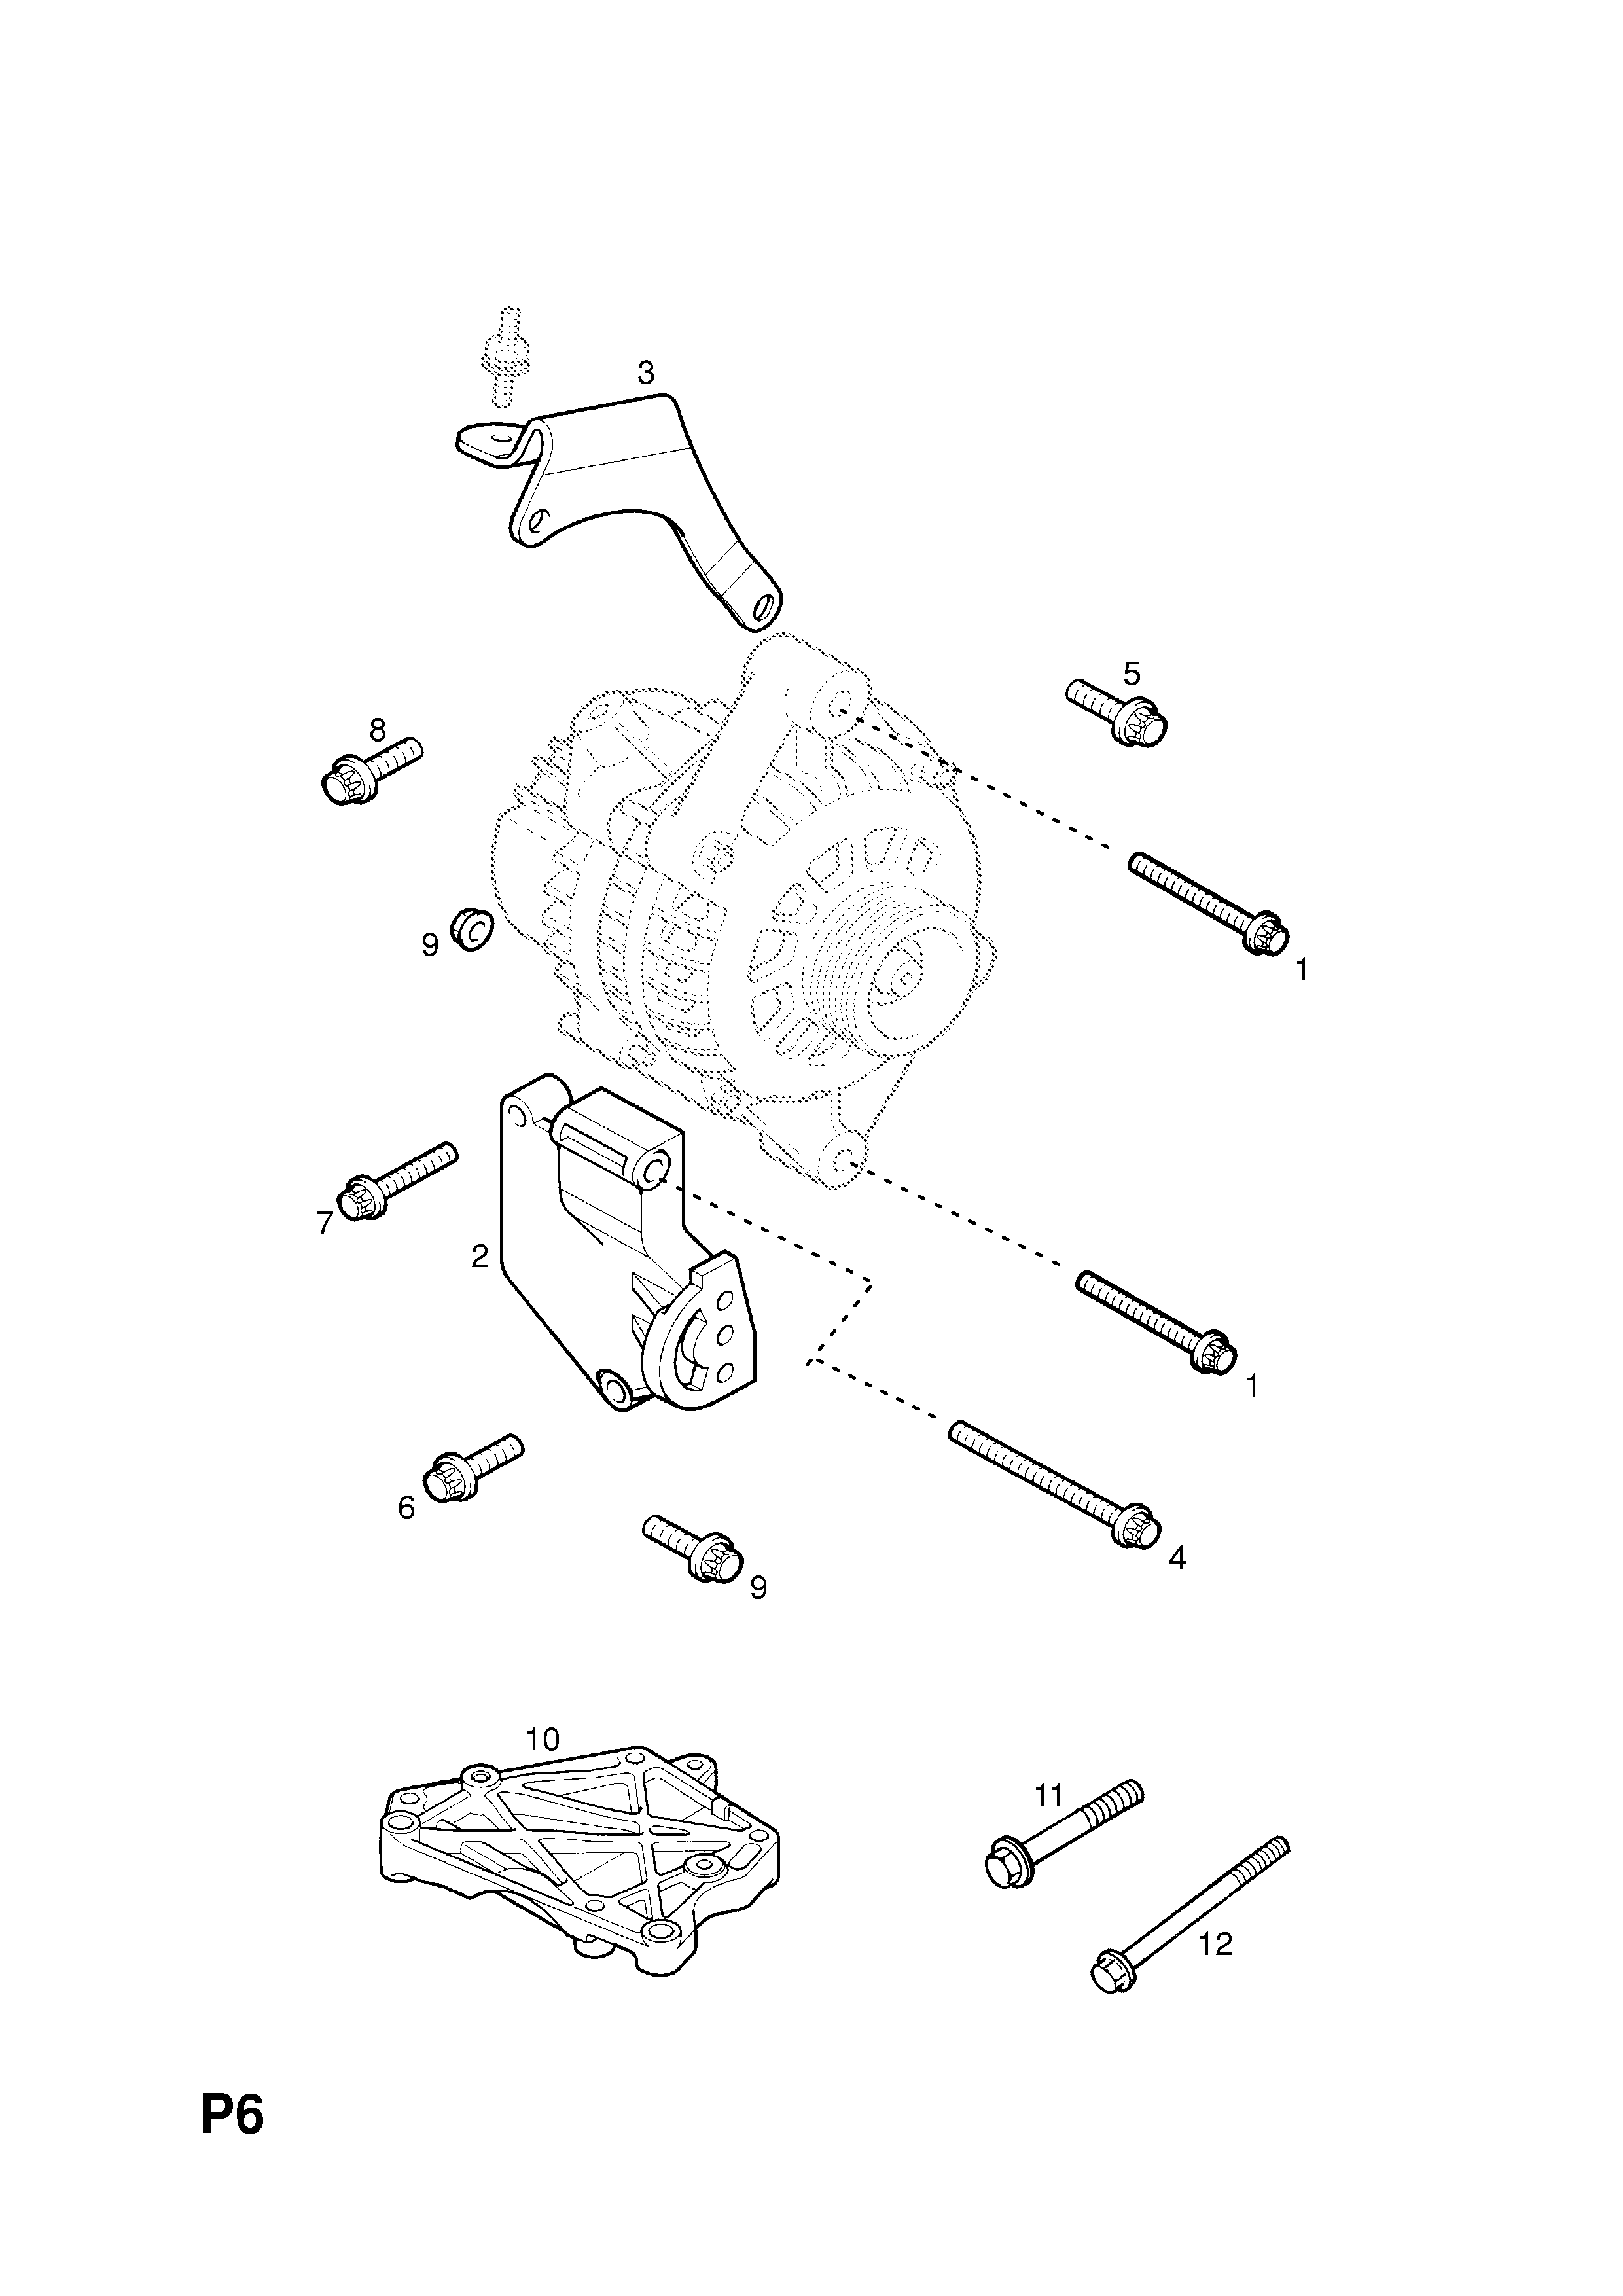 Opel Tigra B 2004 P Electrical 1 Engine And Cooling 19 Gm Alternator Parts Diagram Part Number Genuine Description Range Fittings